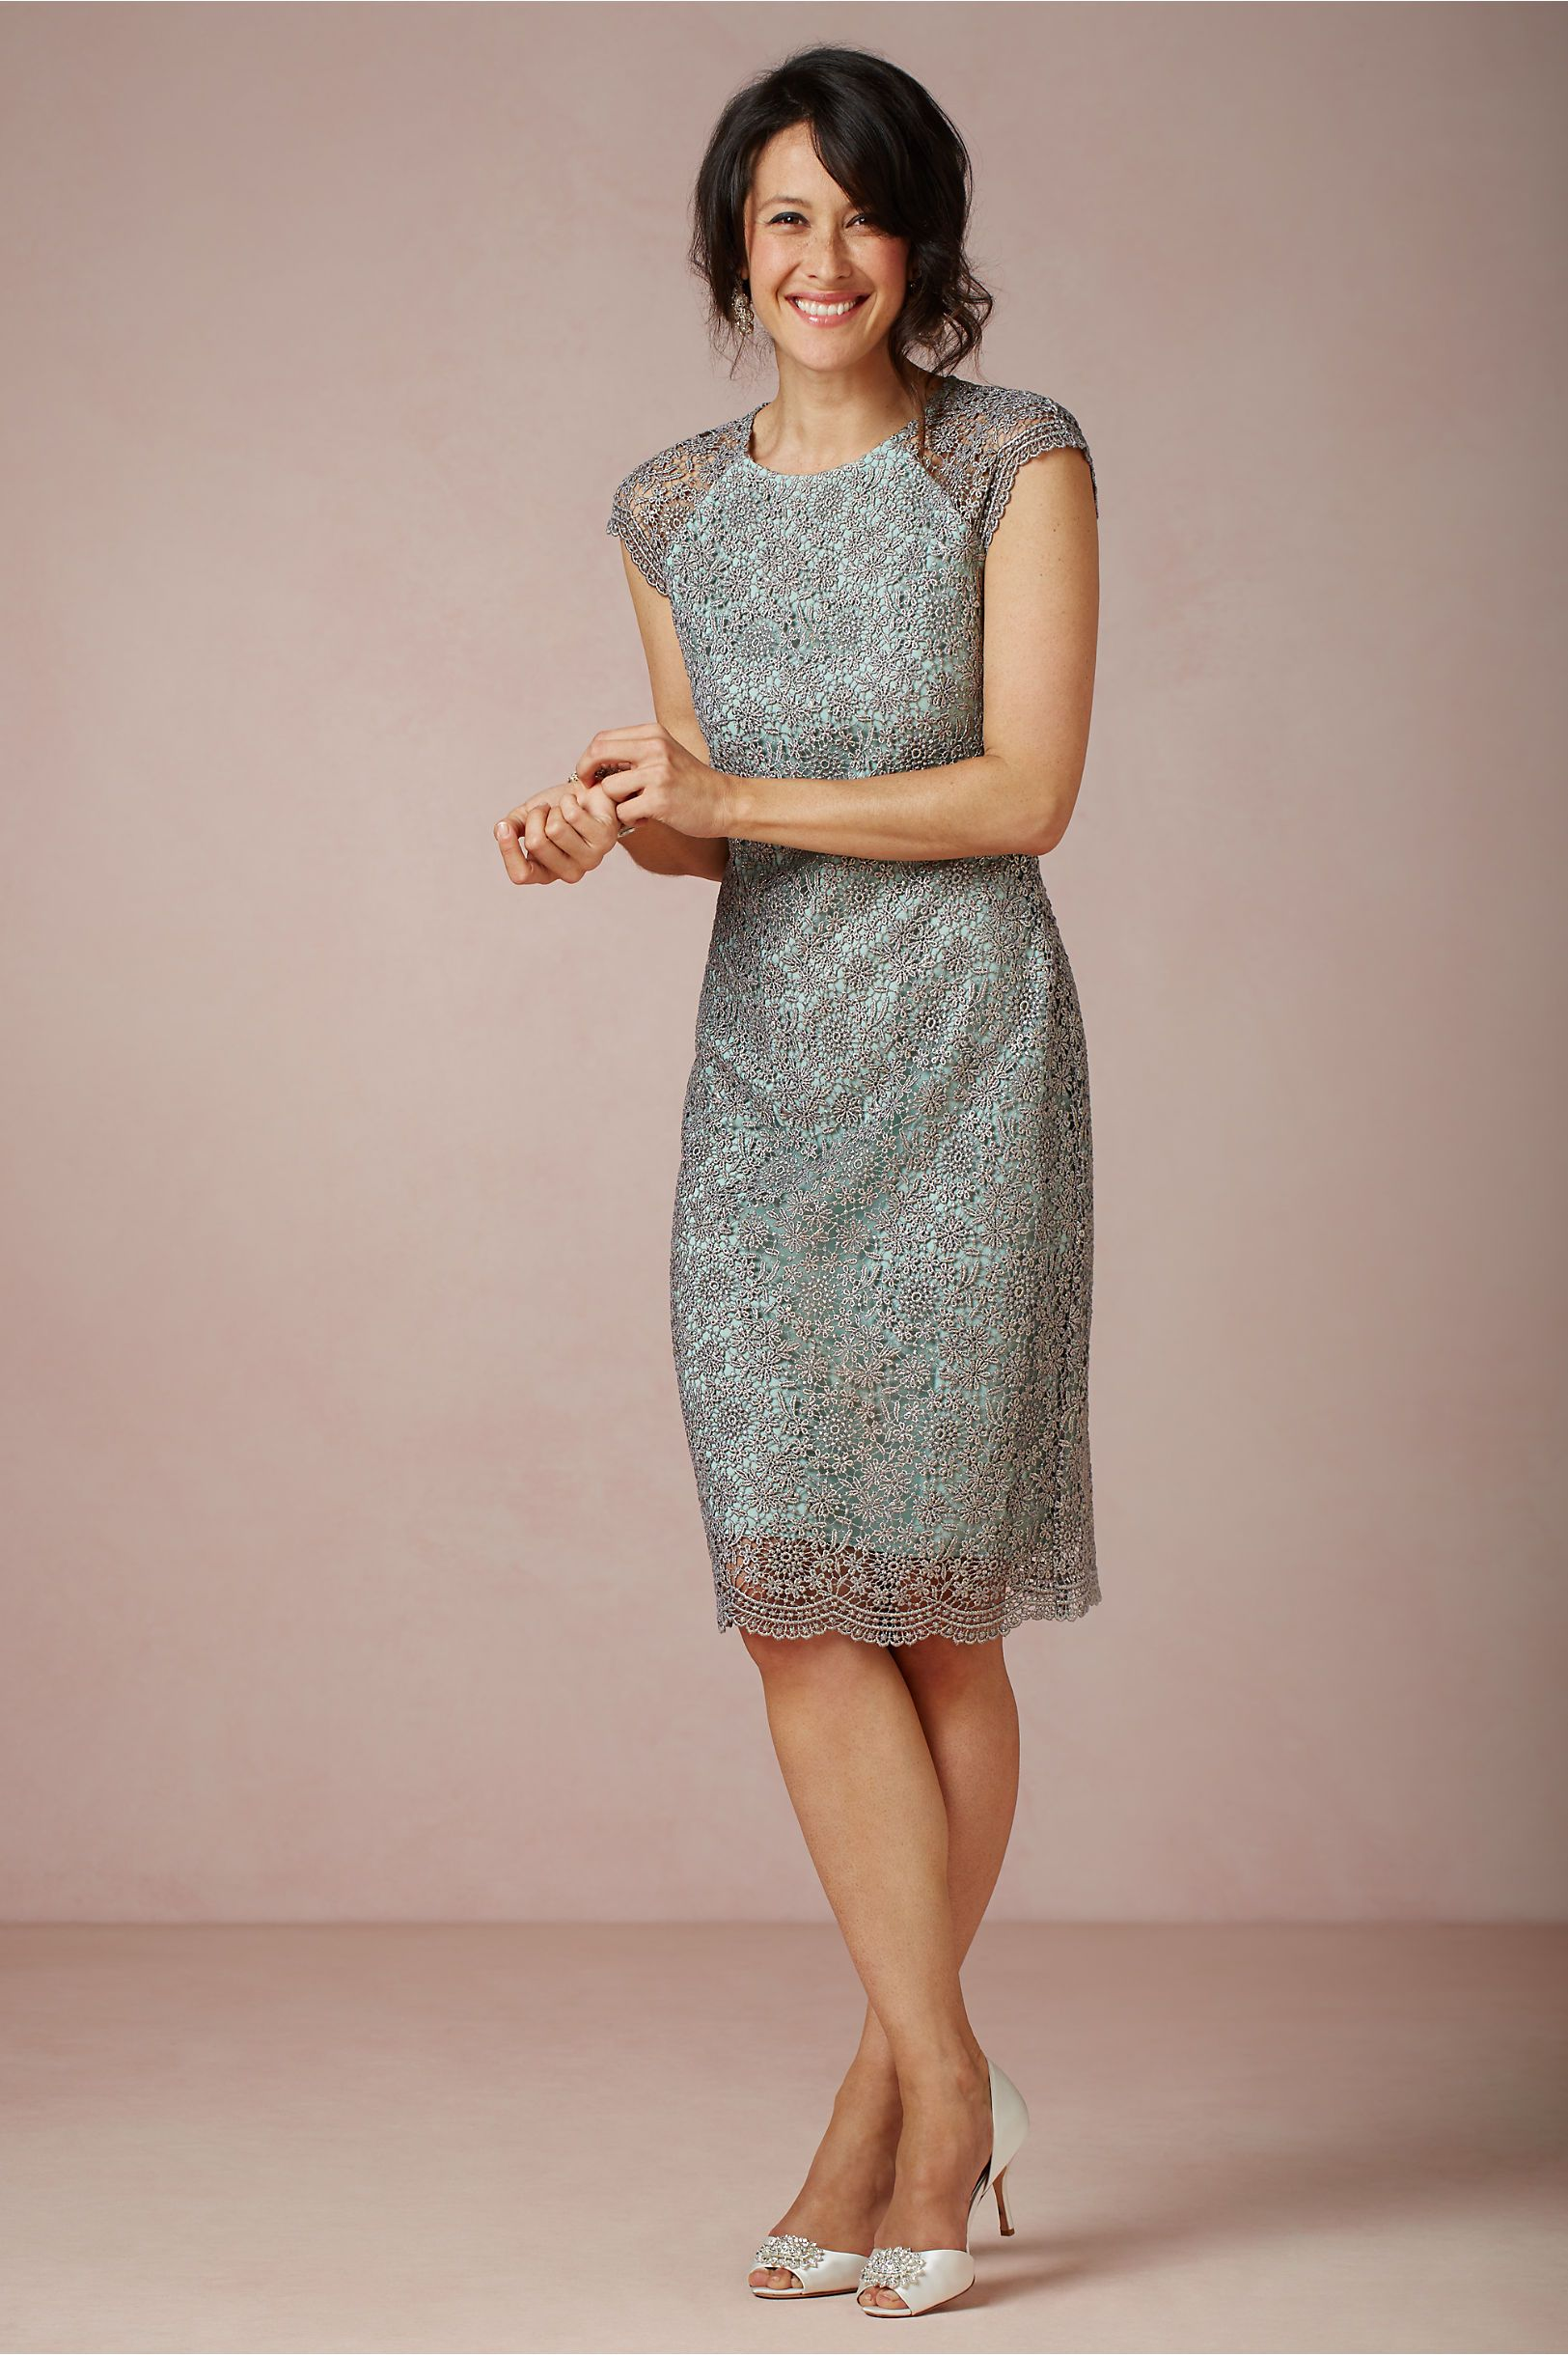 Shined Lace Shift In Bridal Party Guests Bridesmaids Dresses At BHLDN This Is The